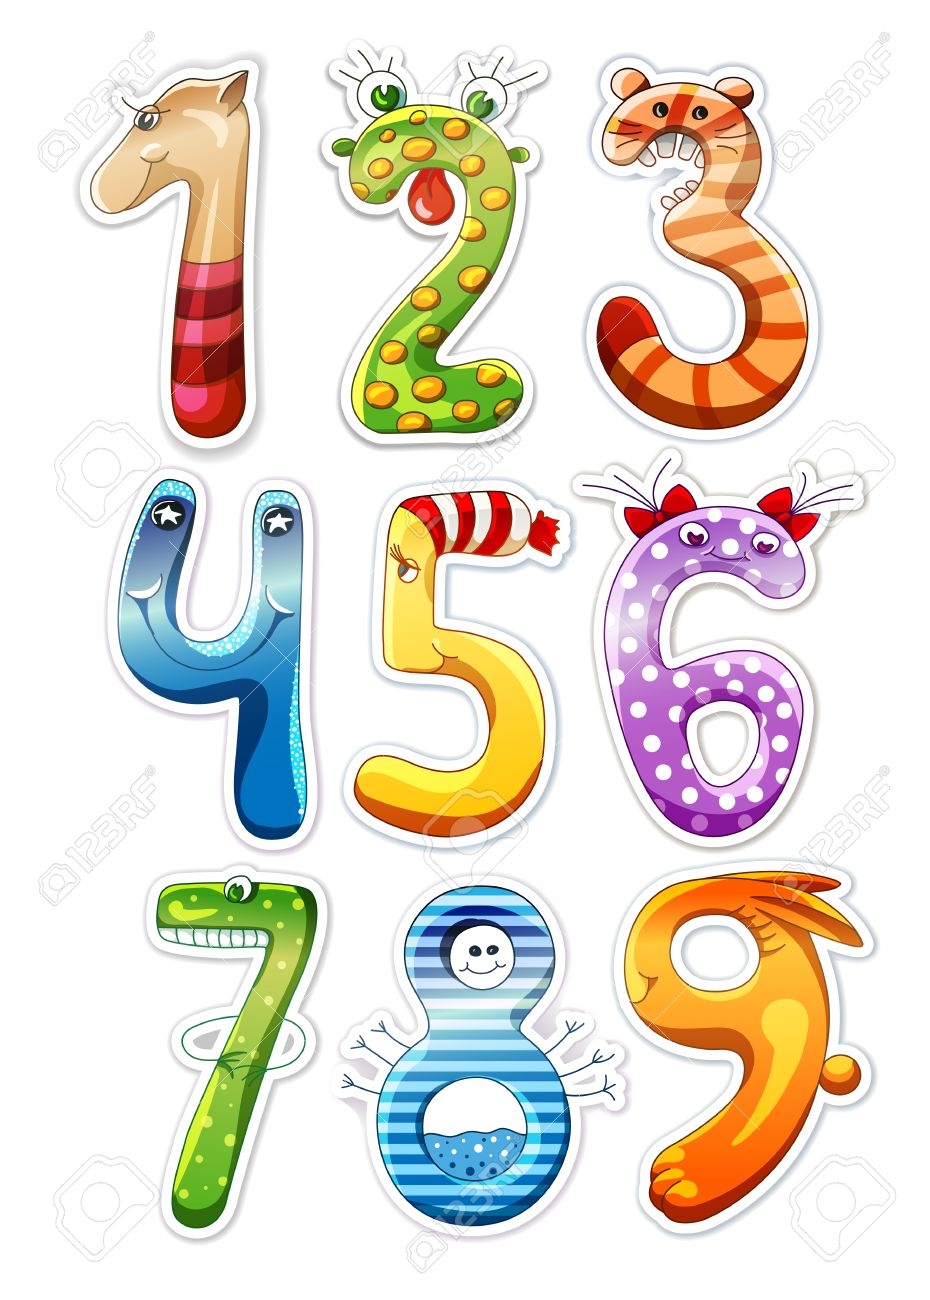 Colorful Cartoon Numbers For Kids Royalty Free Cliparts, Vectors ...